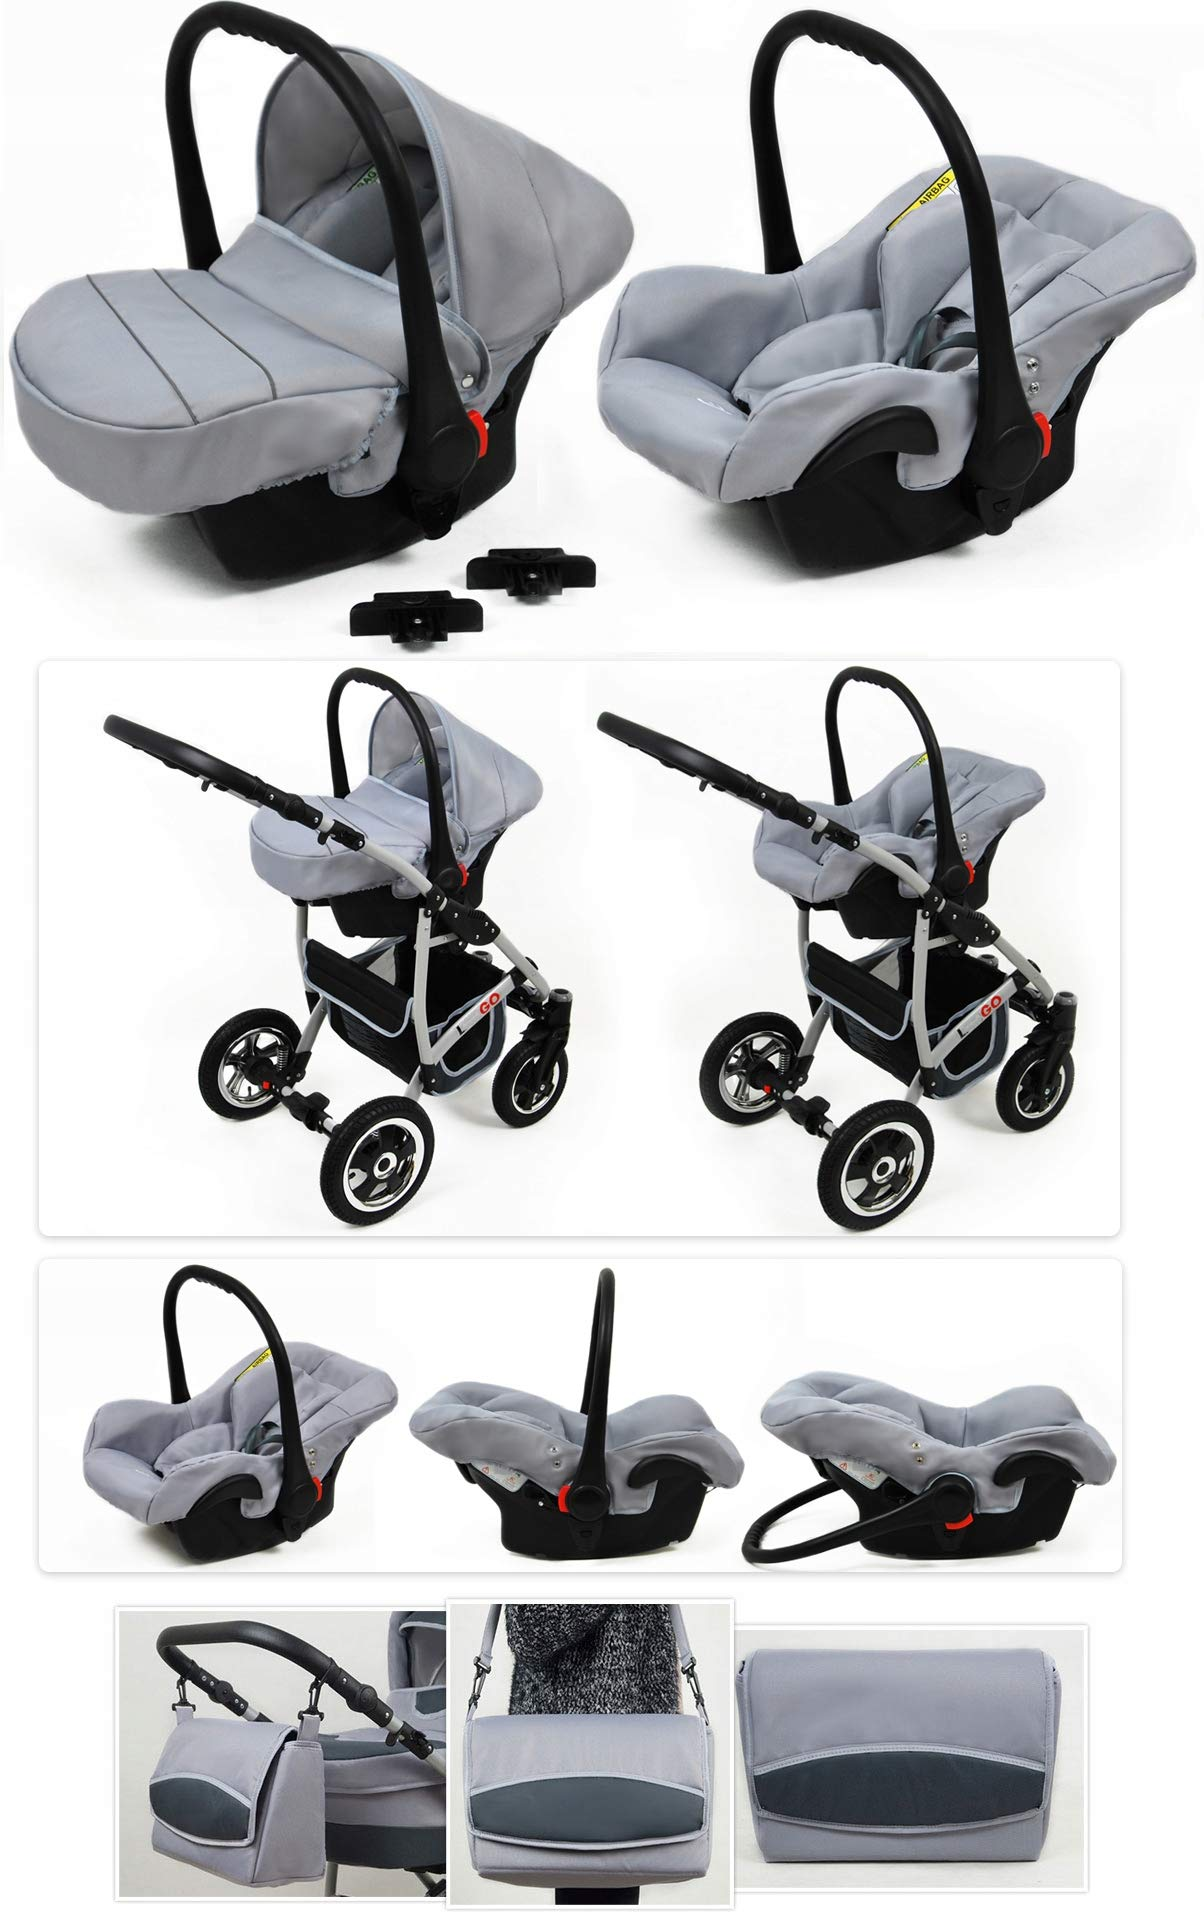 SaintBaby Stroller Pram 2in1 3in1 Set All in one Baby seat Buggy Pushchair New L-GO Black 3in1 with Baby seat SaintBaby 3in1 or 2in1 Selectable. At 3in1 you will also receive the car seat (baby seat). Of course you get the baby tub (classic pram) as well as the buggy attachment (sports seat) no matter if 2in1 or 3in1. The car naturally complies with the EU safety standard EN1888. During production and before shipment, each wagon is carefully inspected so that you can be sure you have one of the best wagons. Saintbaby stands for all-in-one carefree packages, so you will also receive a diaper bag in the same colour as the car as well as rain and insect protection free of charge. With all the colours of this pram you will find the pram of your dreams. 5